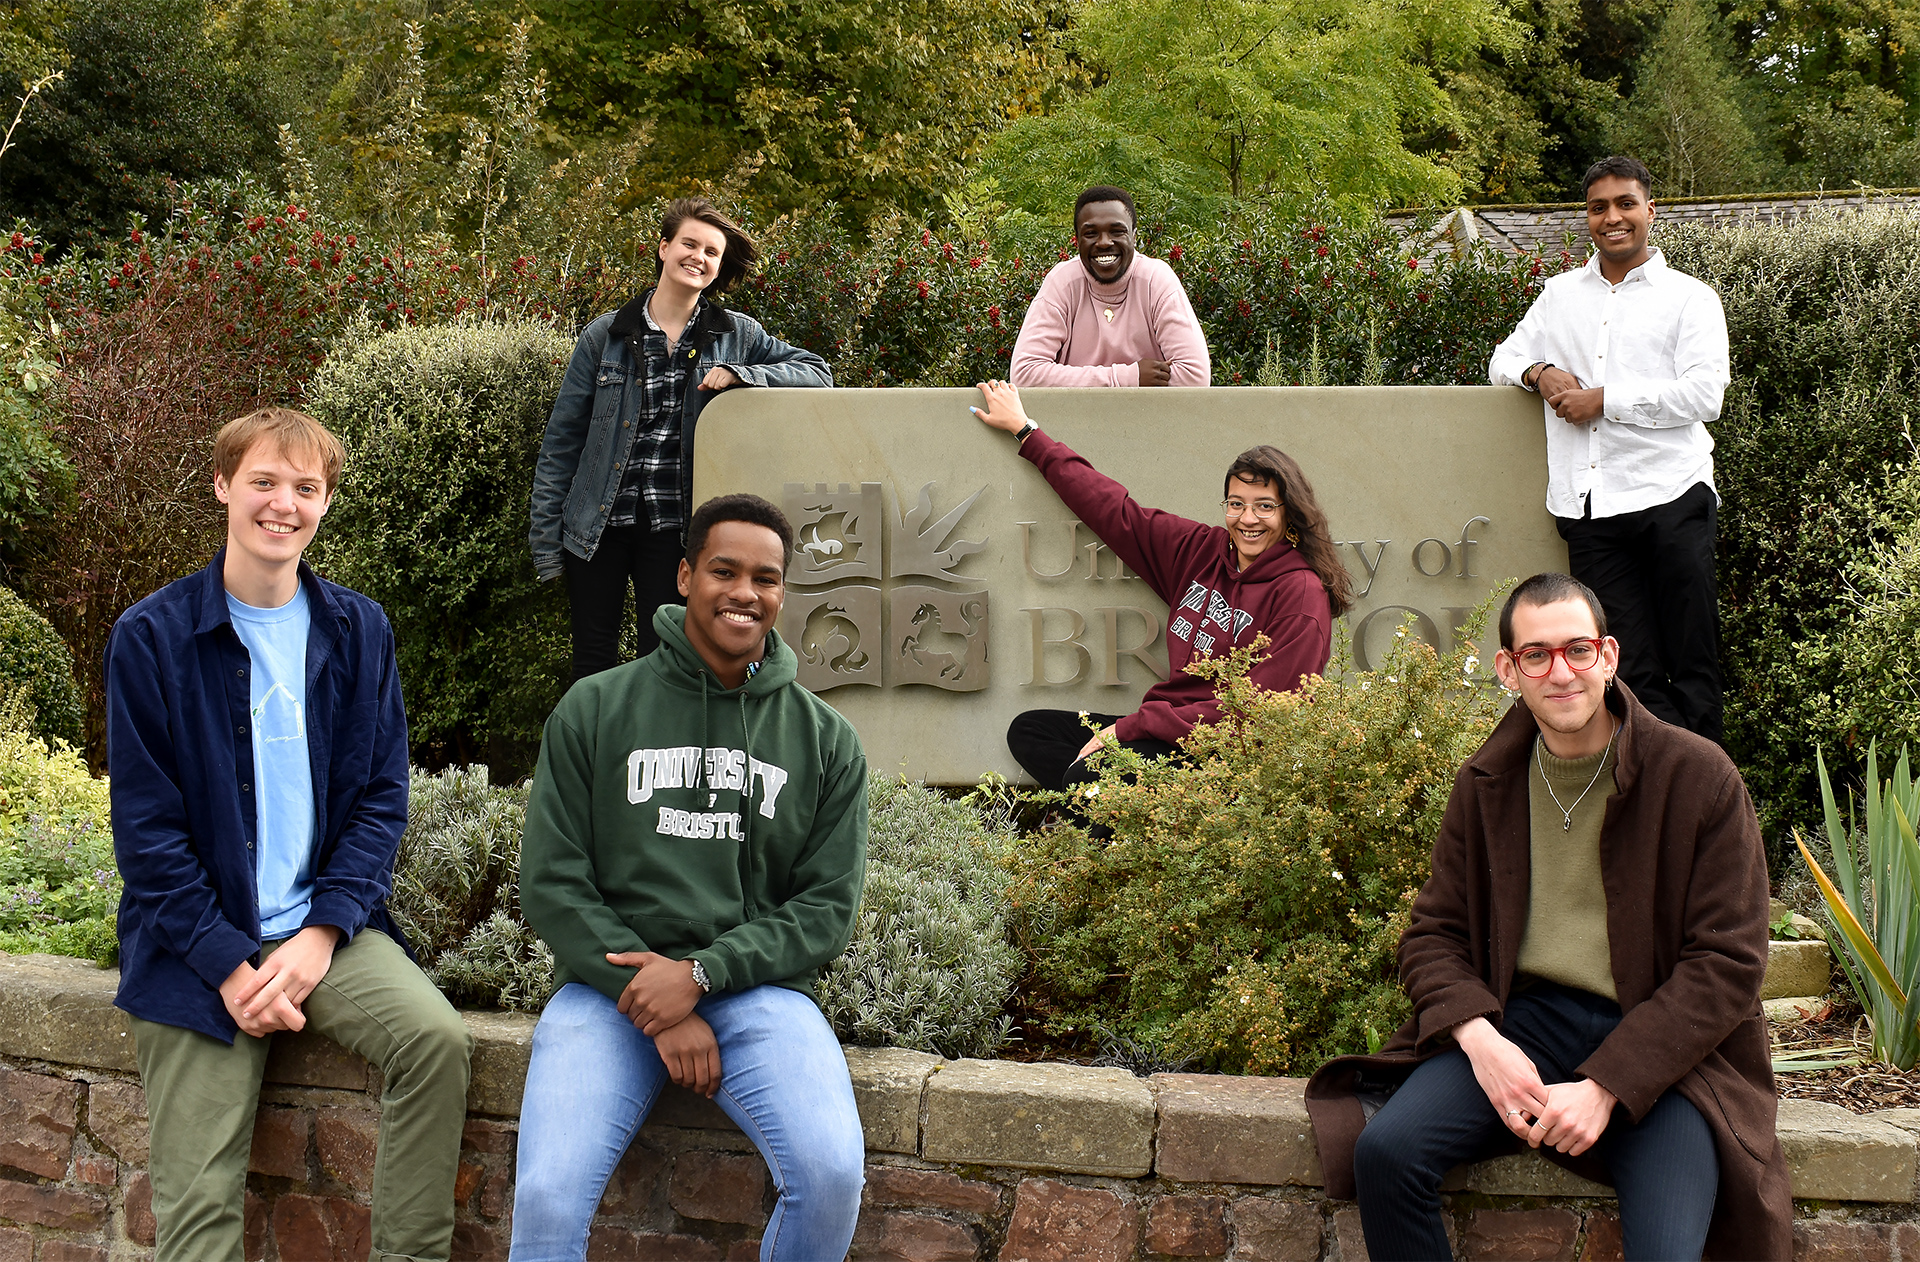 Photo of Bristol SU Officers sat outside surrounding a stone 'University of Bristol' Logo. From Left to Right is David Ion, Ruth Day, Roy Kiruri, Julio Mkok, Leah Martindale, Jason Palmer, and Rushab Shah.